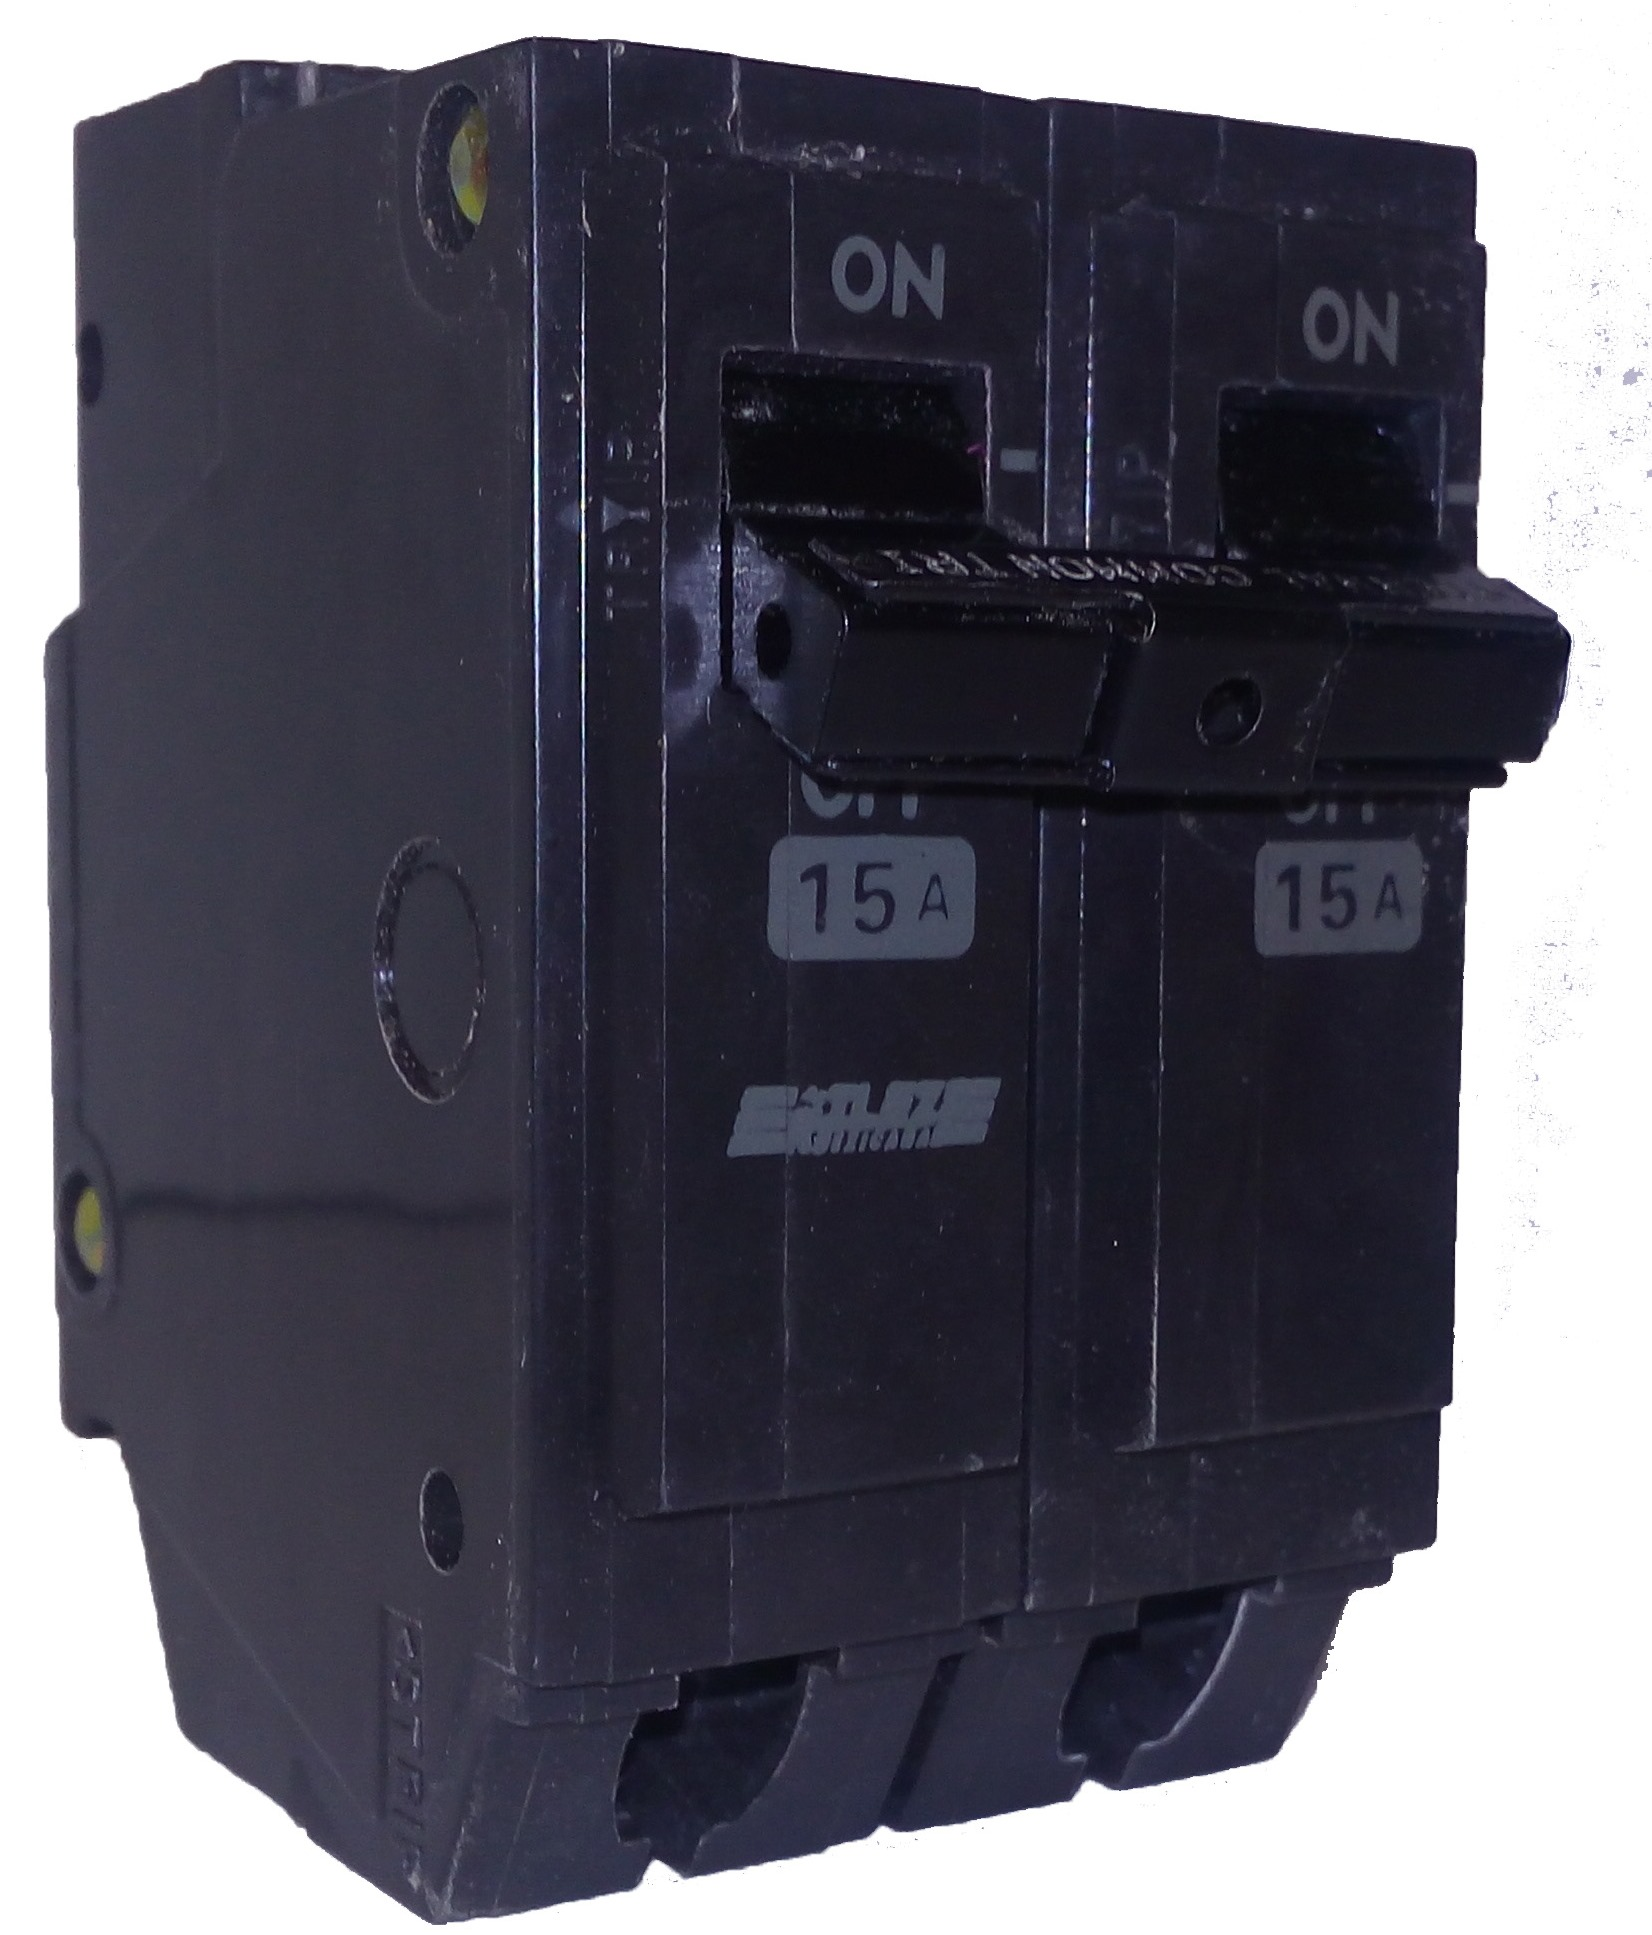 INTERRUPTOR TERM. 2 X 15 A TIPO QP